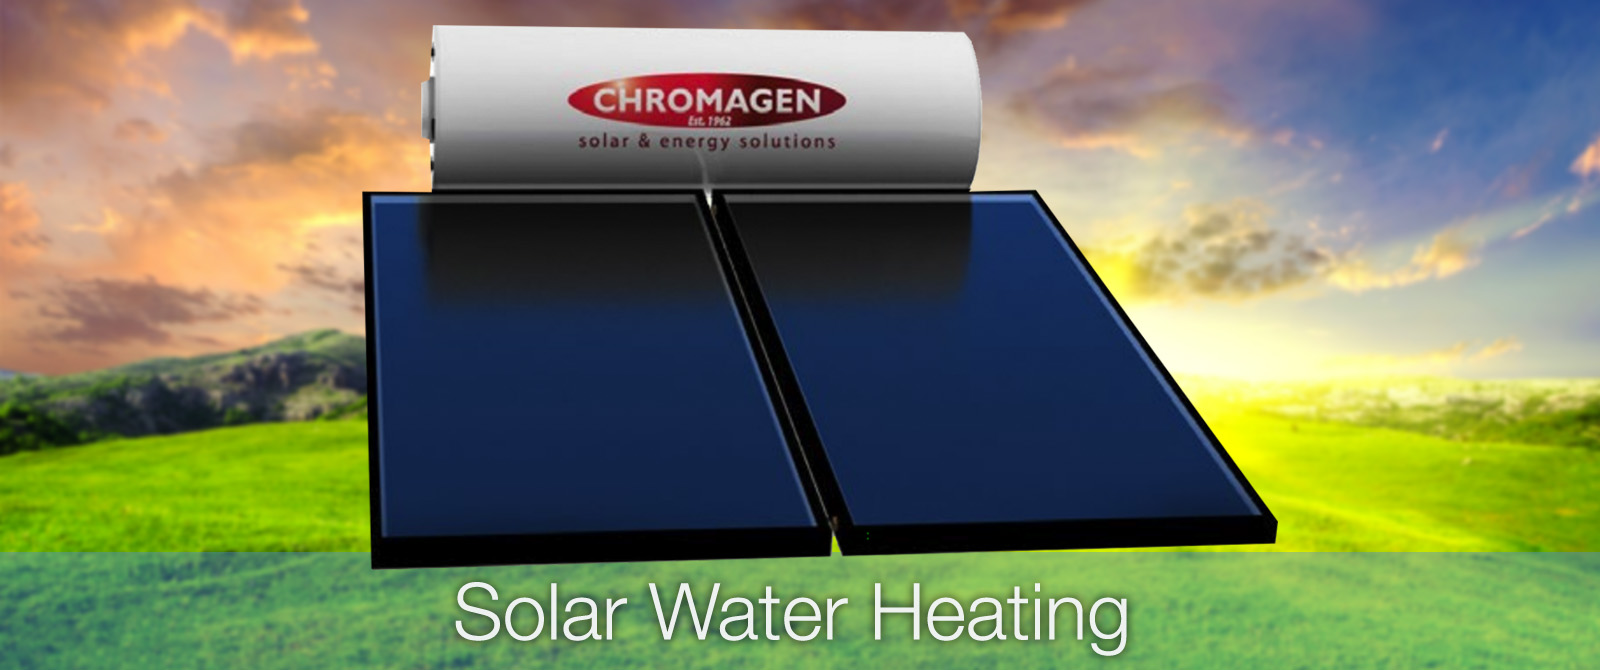 solar water heating lanzarote